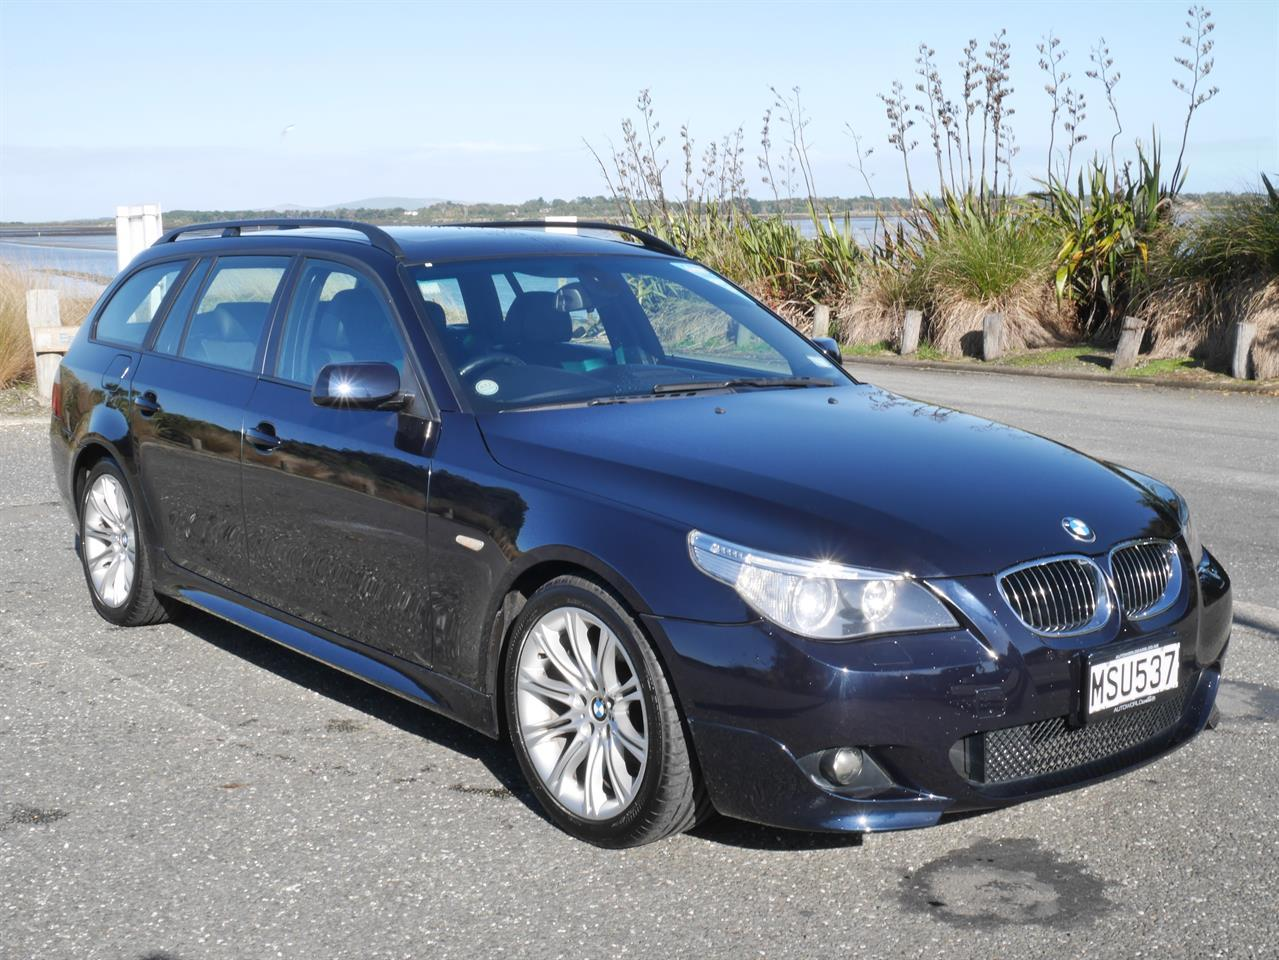 image-1, 2006 BMW 525i Touring M Sports at Invercargill